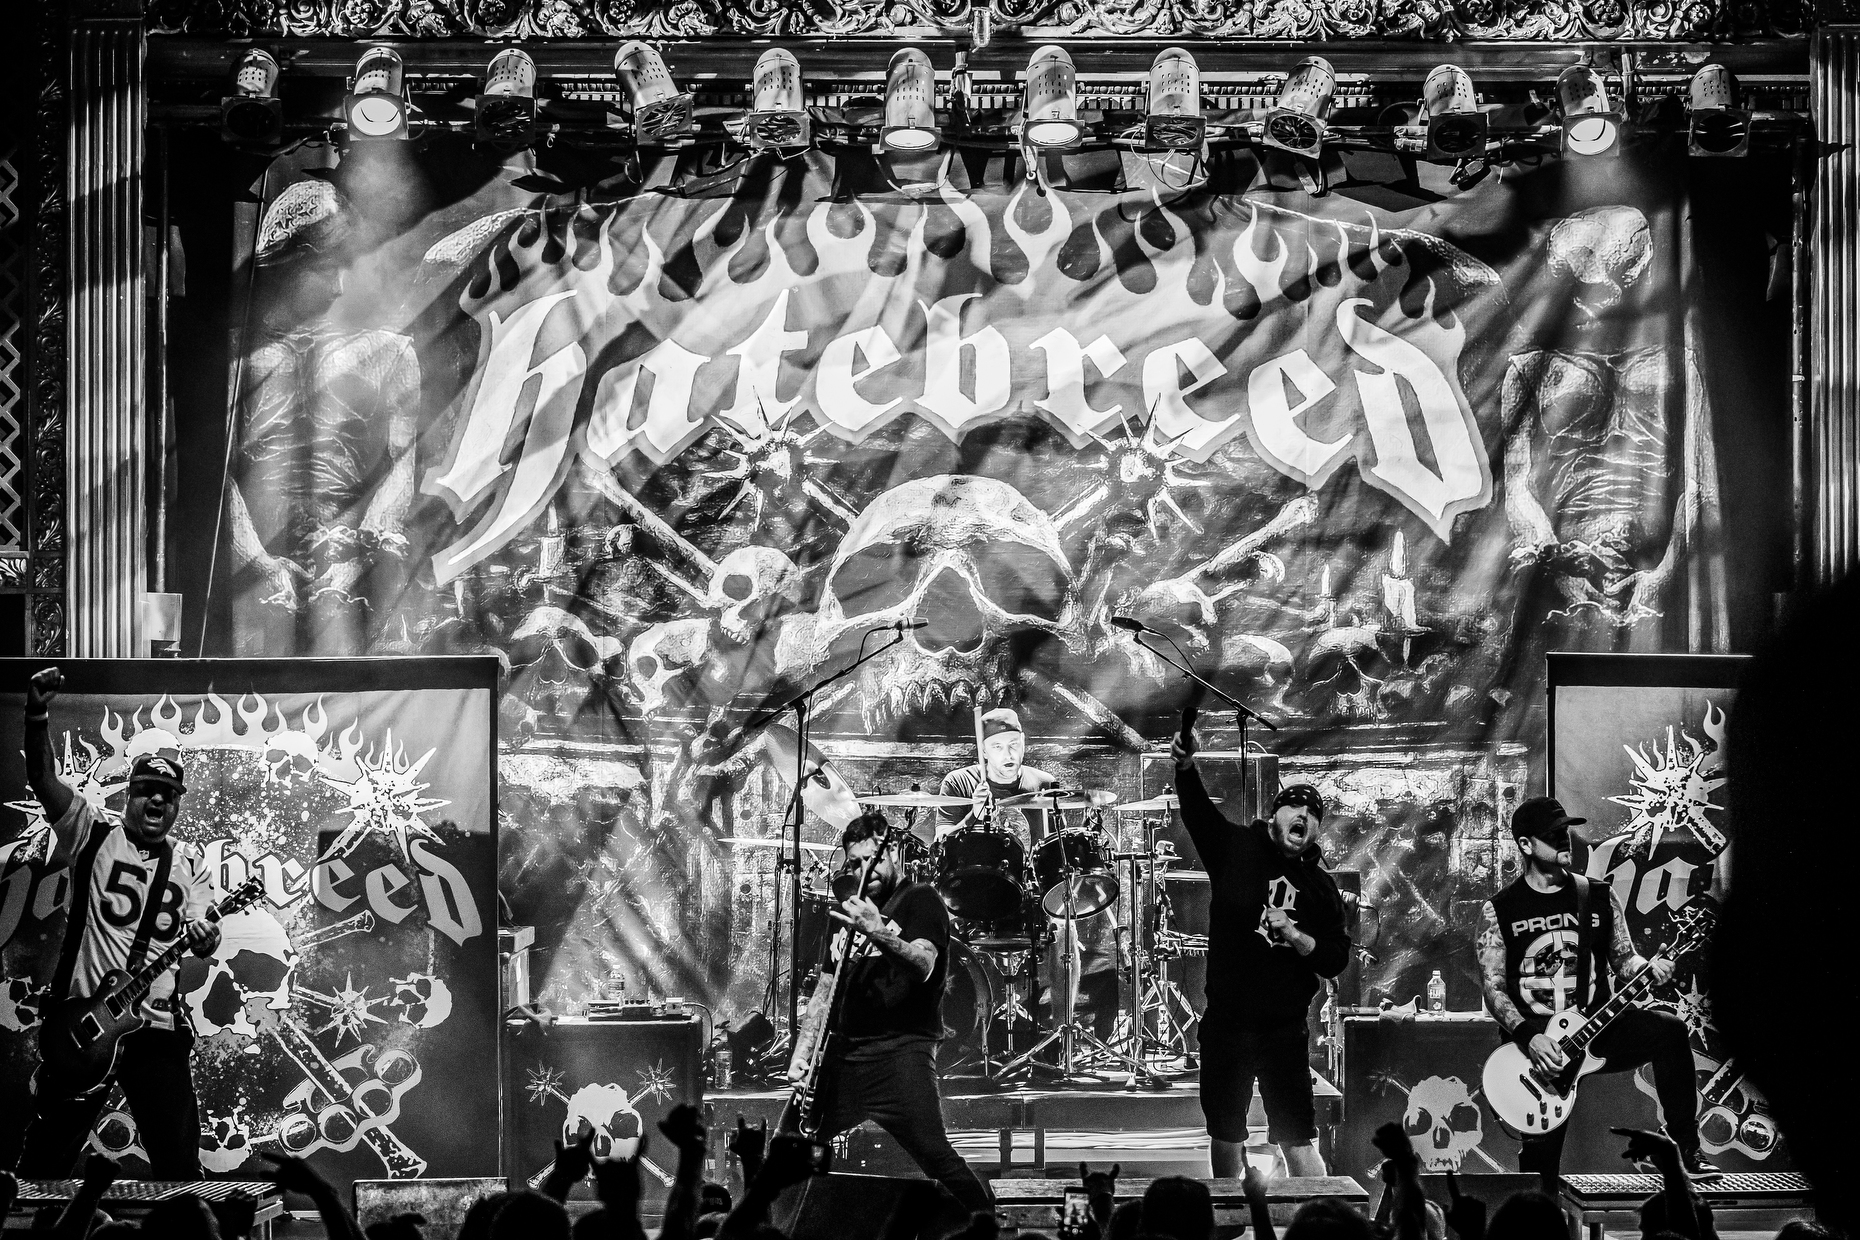 HATEBREED0057.JPG